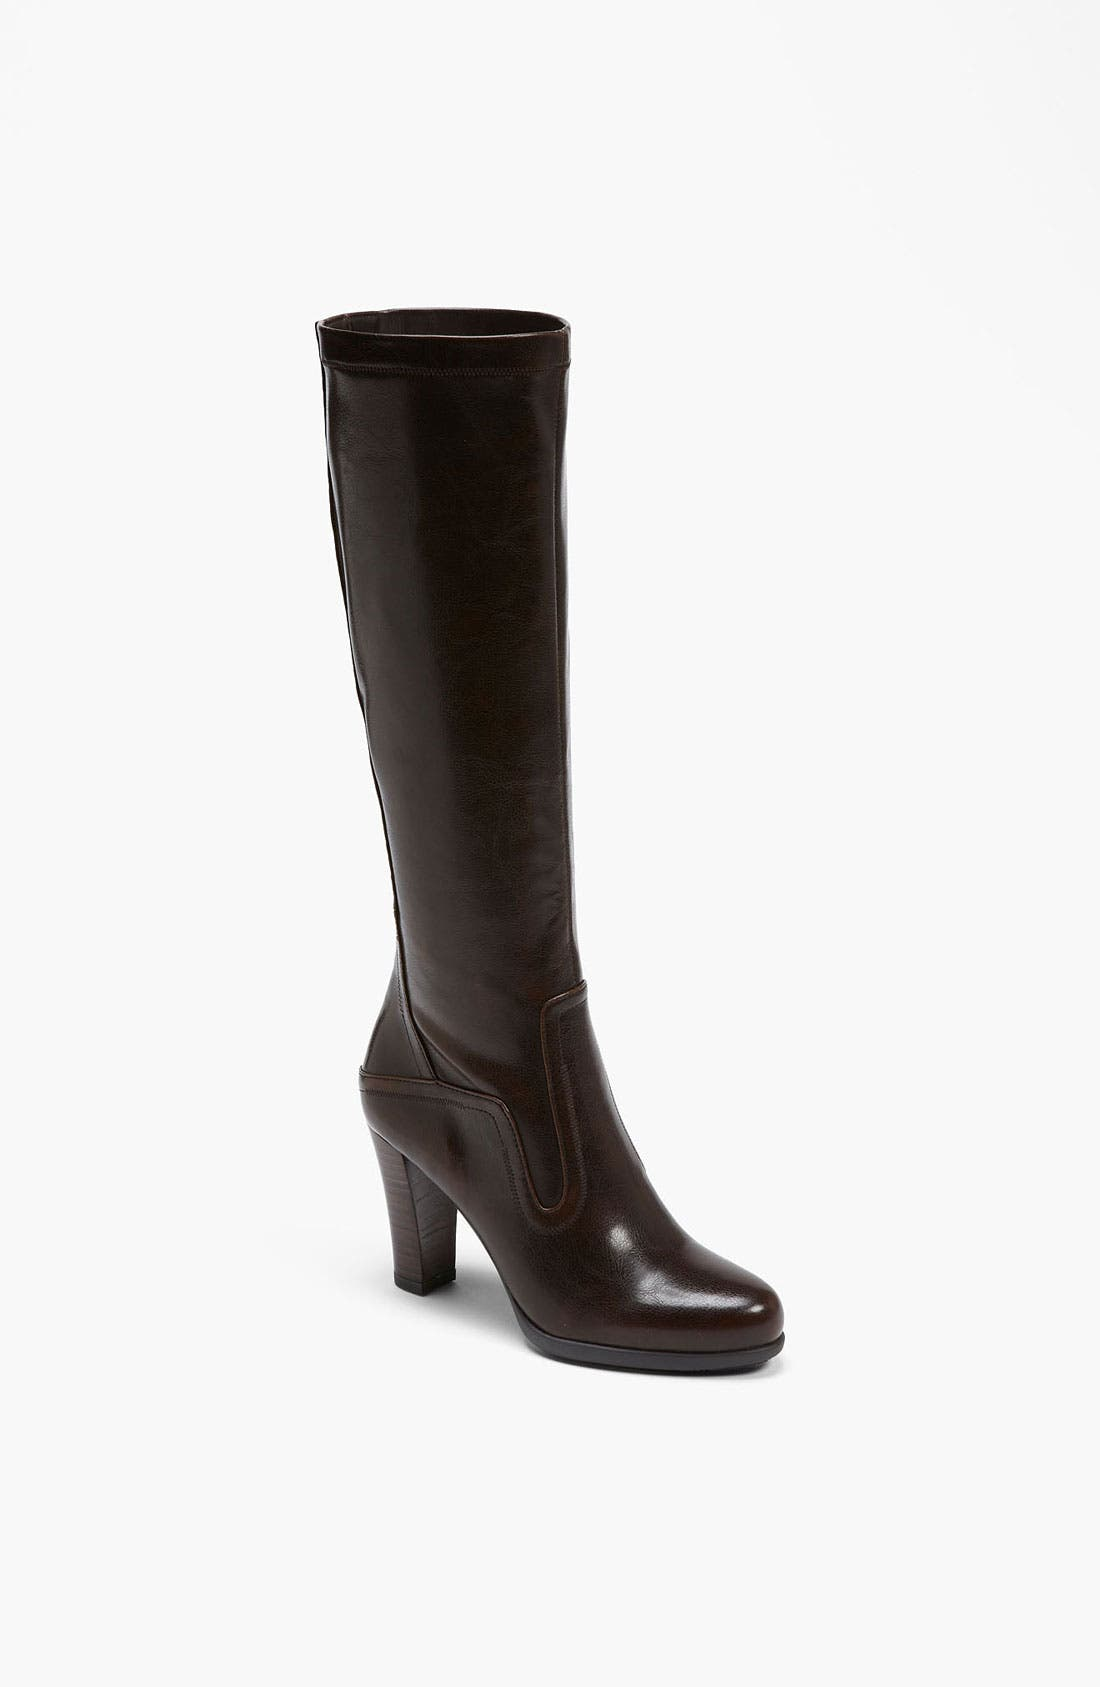 Alternate Image 1 Selected - Franco Sarto 'Hush' Boot (Special Purchase)